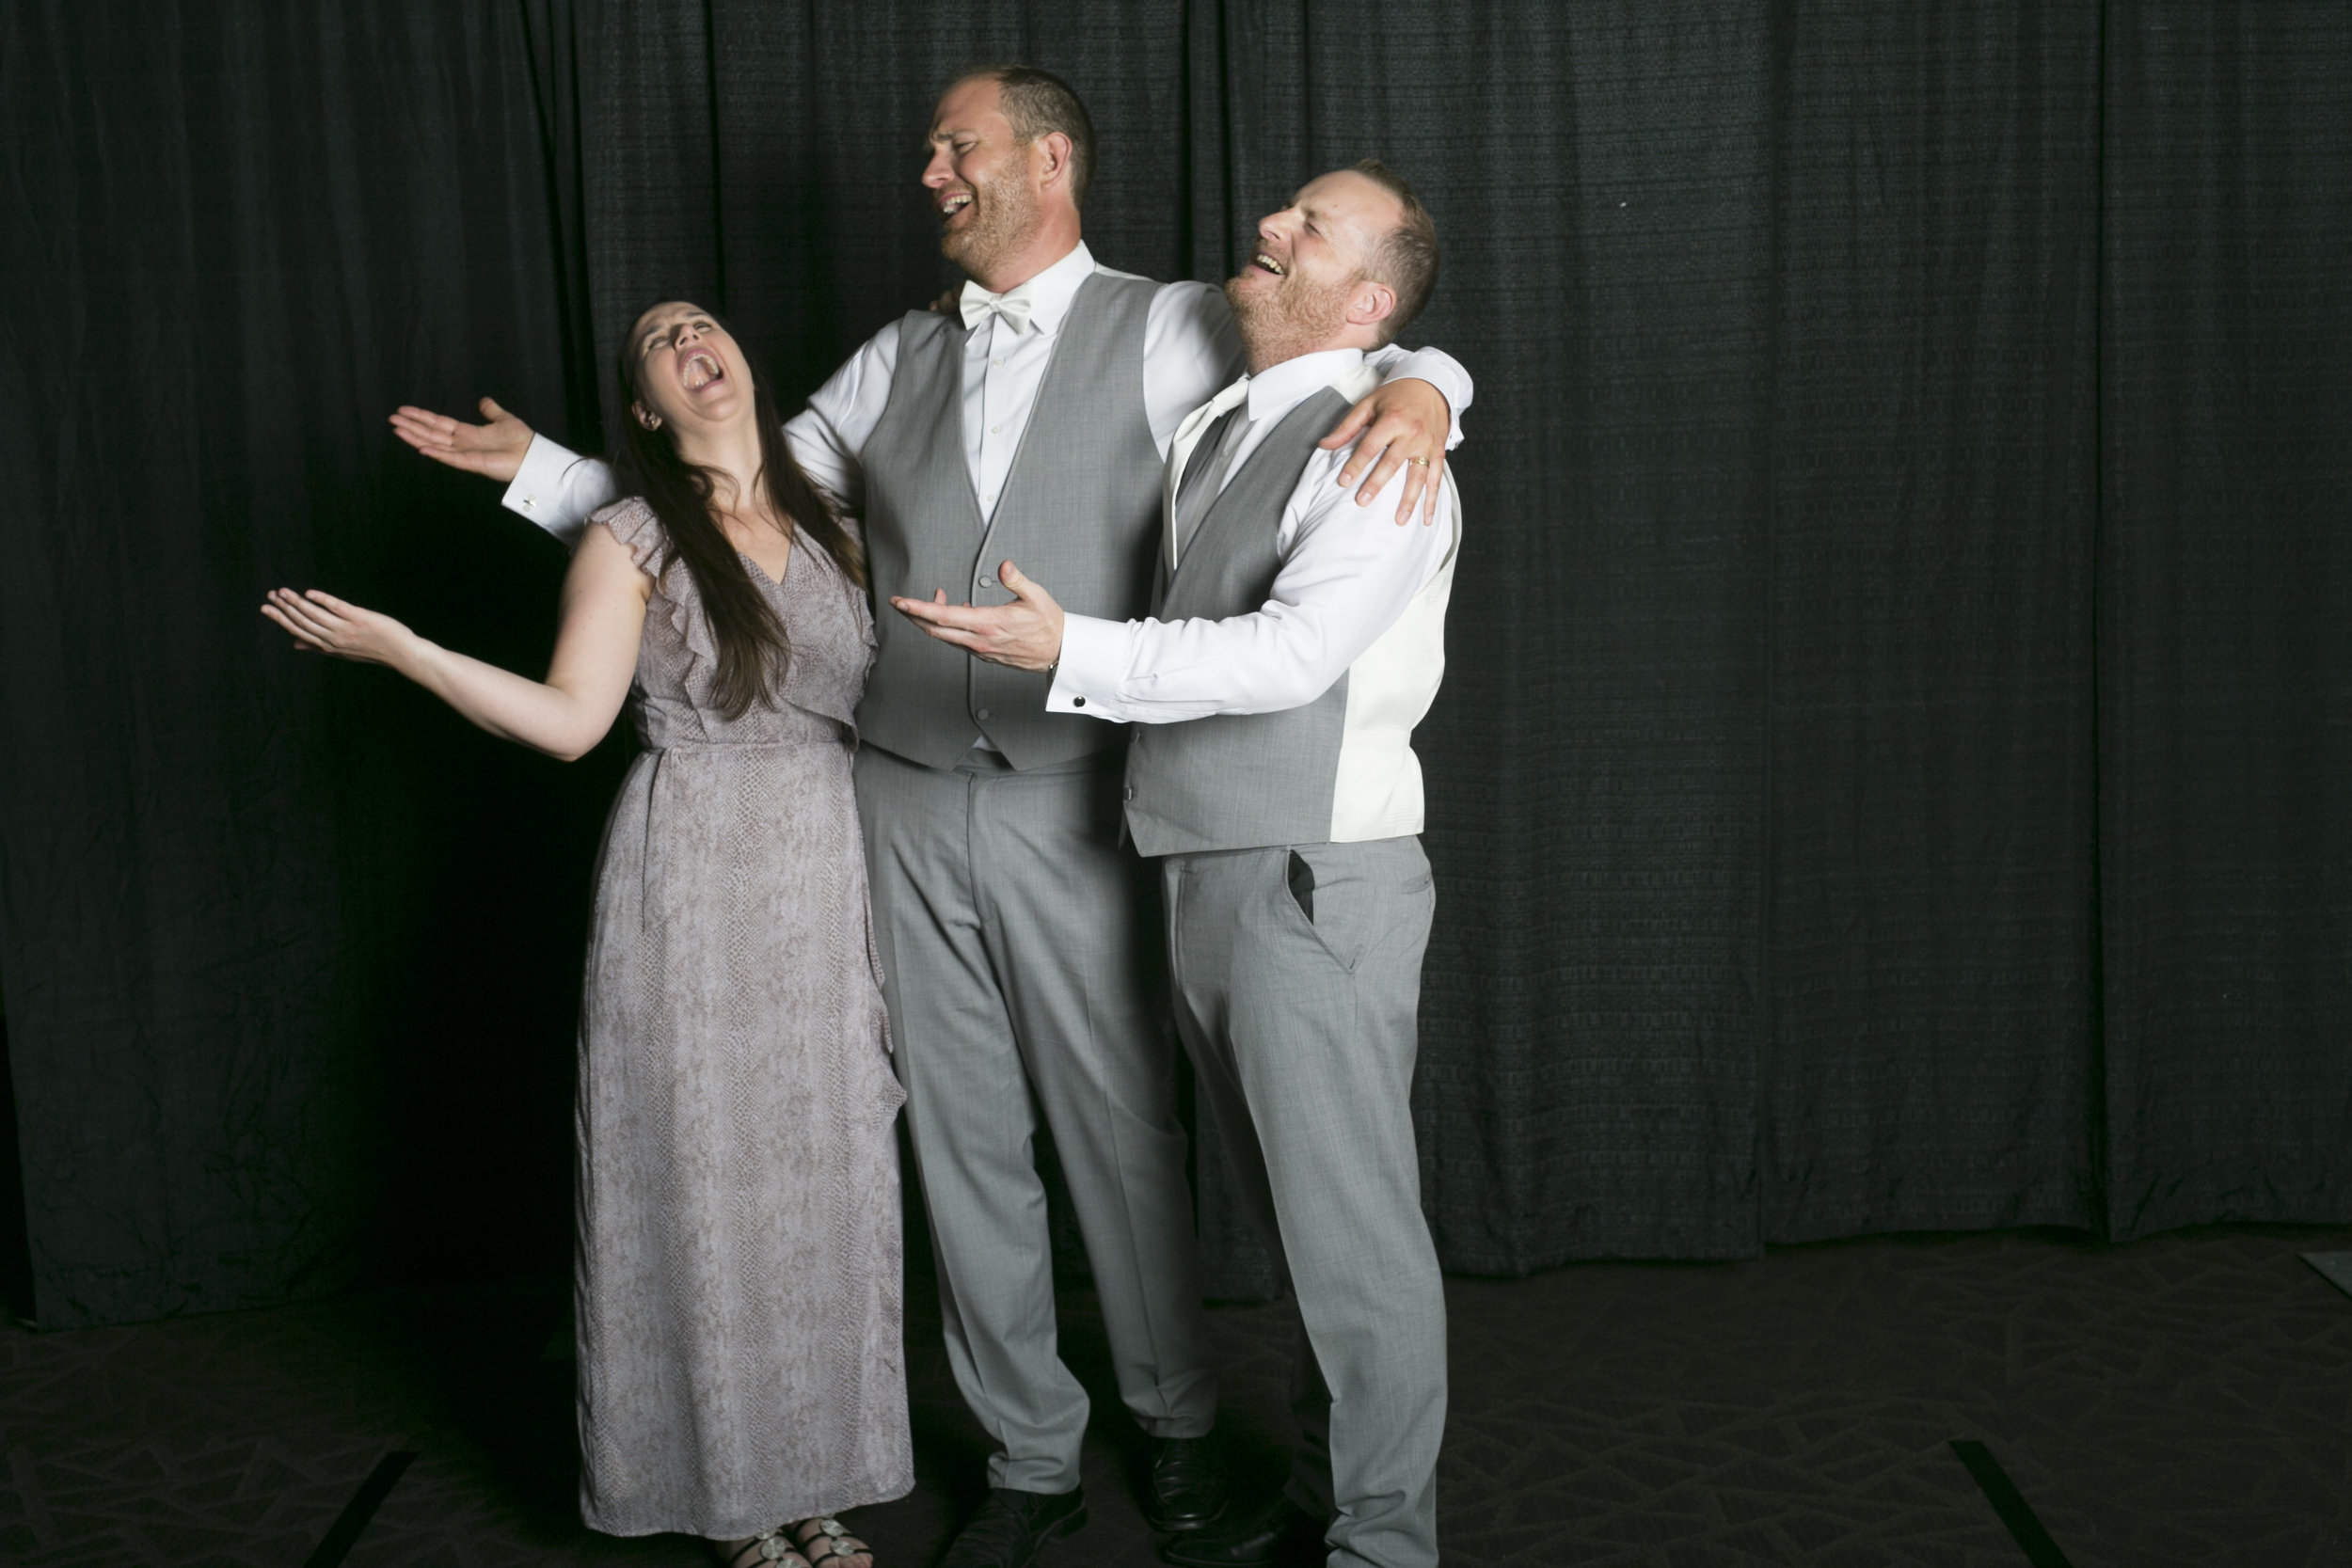 wedding photo booth-156.jpg